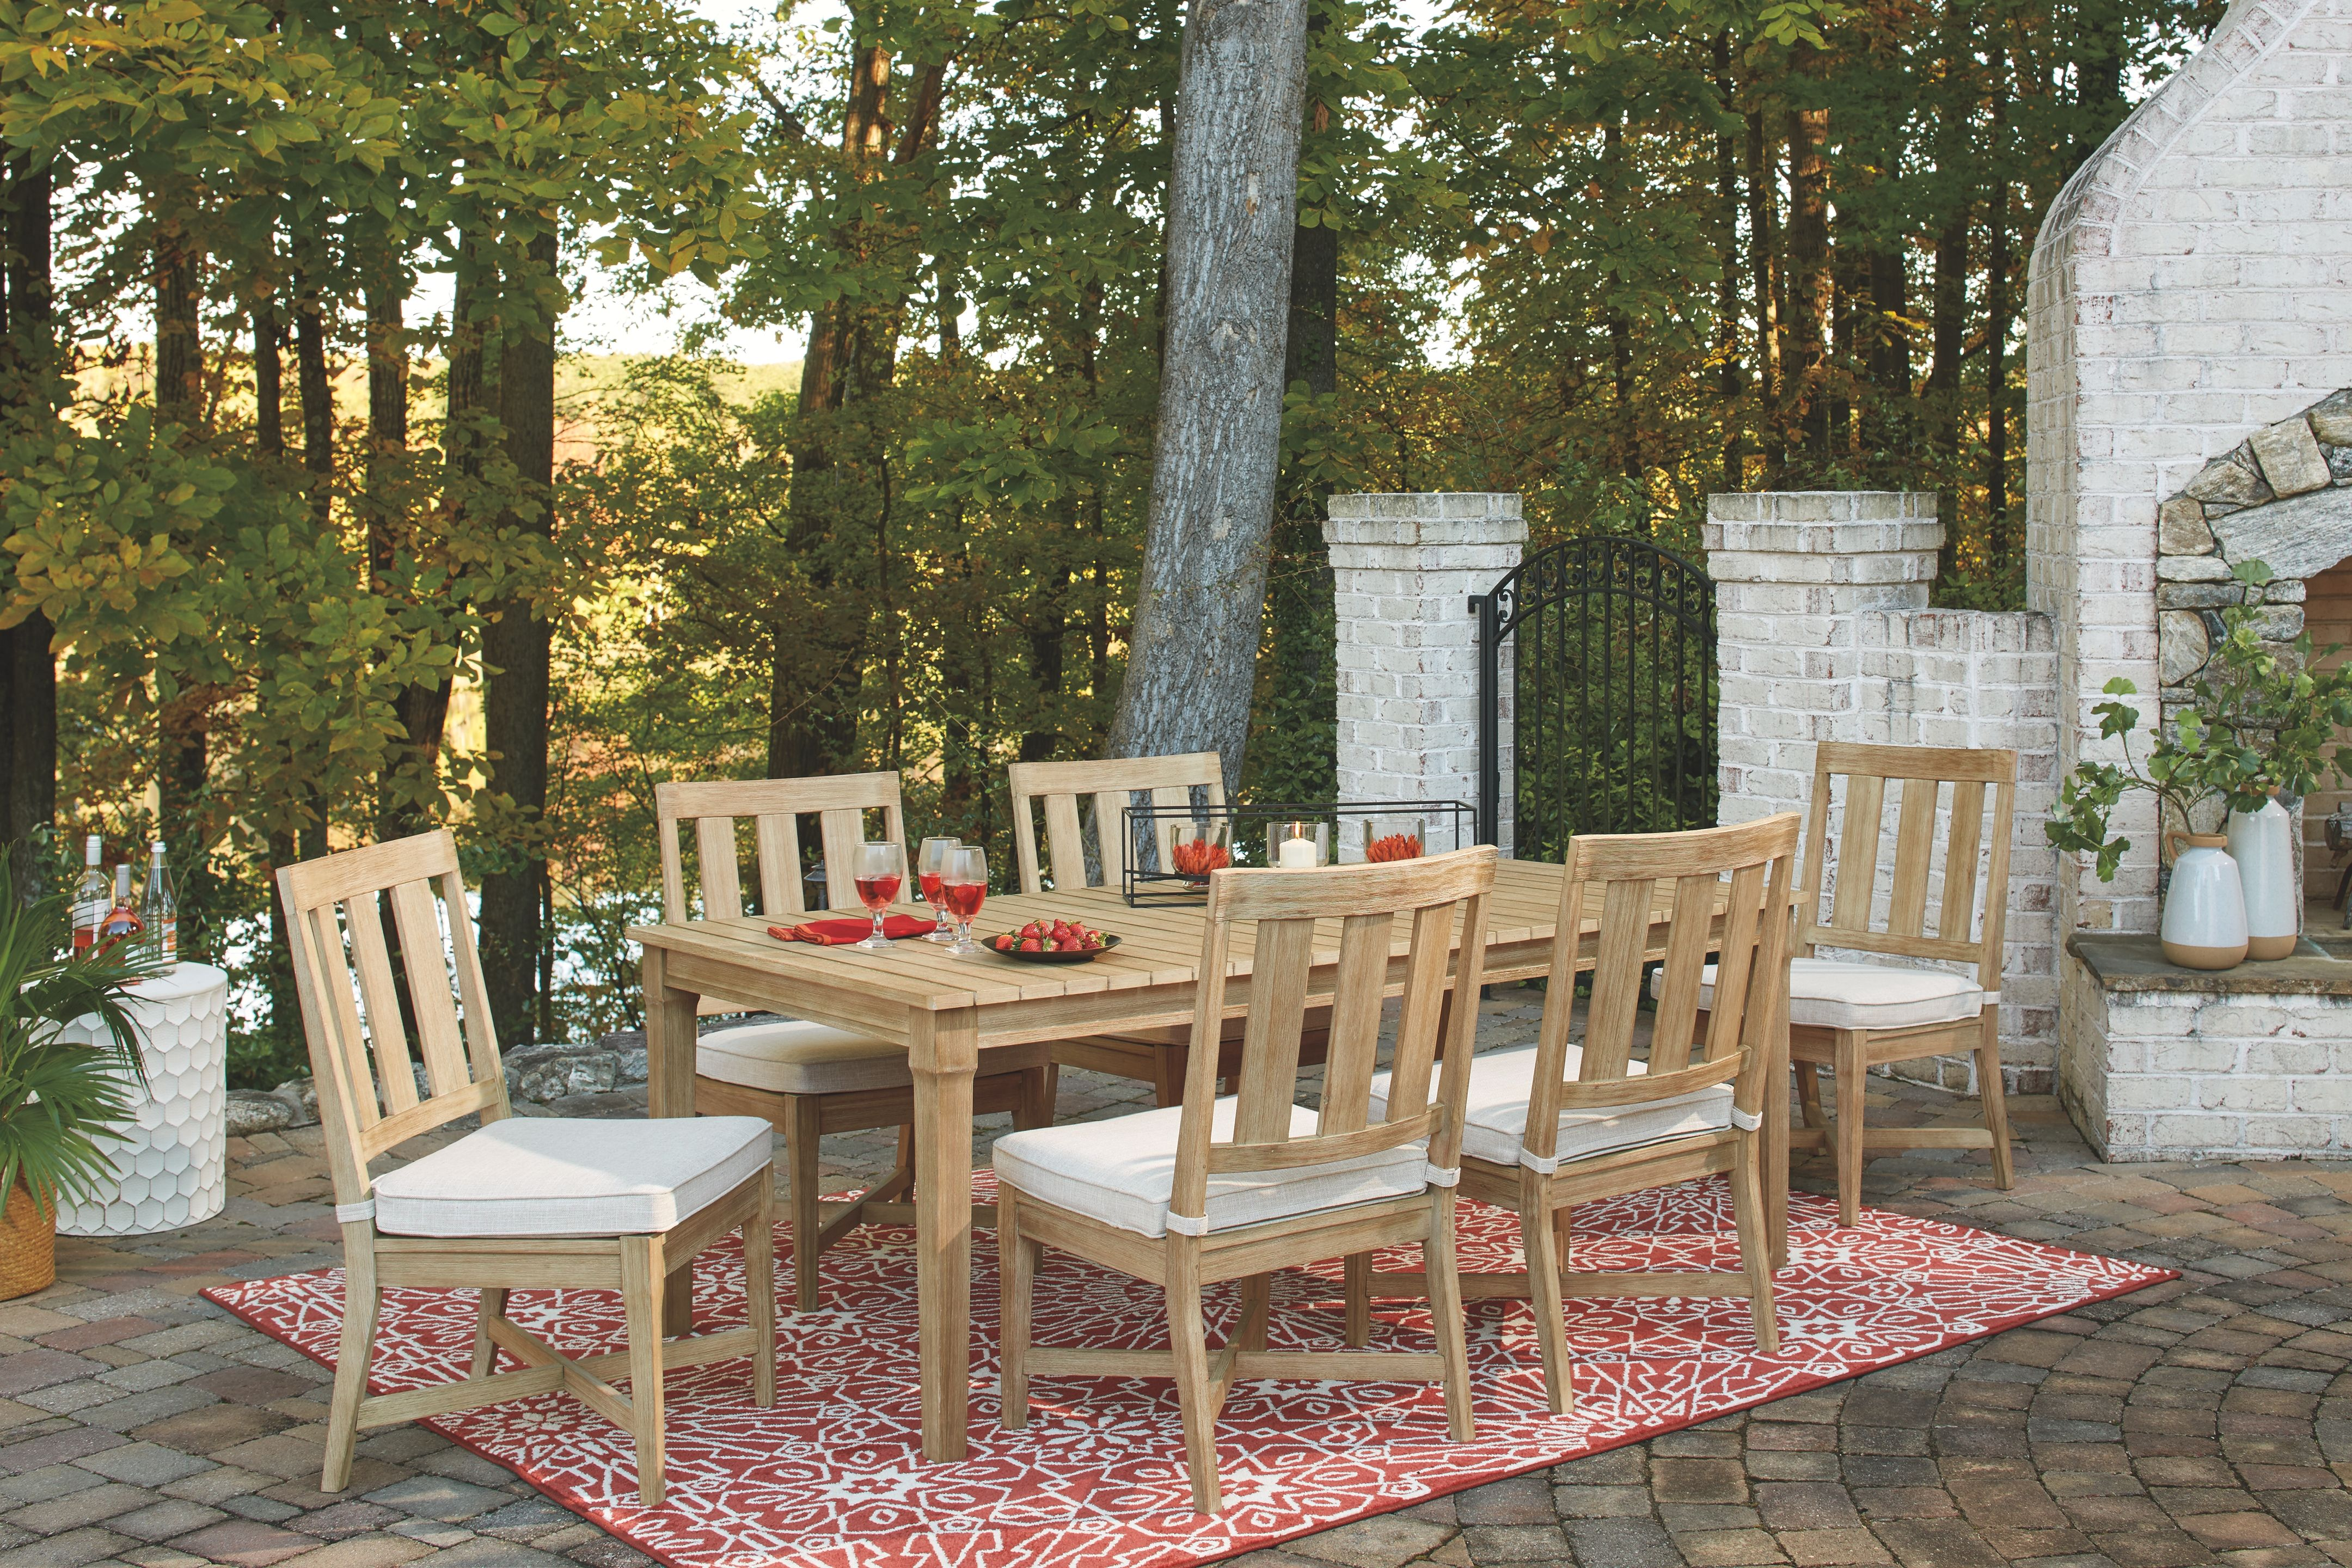 Clare View - Beige - Dining Set with 6 Chairs - EZ ... on Clare View Beige Outdoor Living Room id=39045